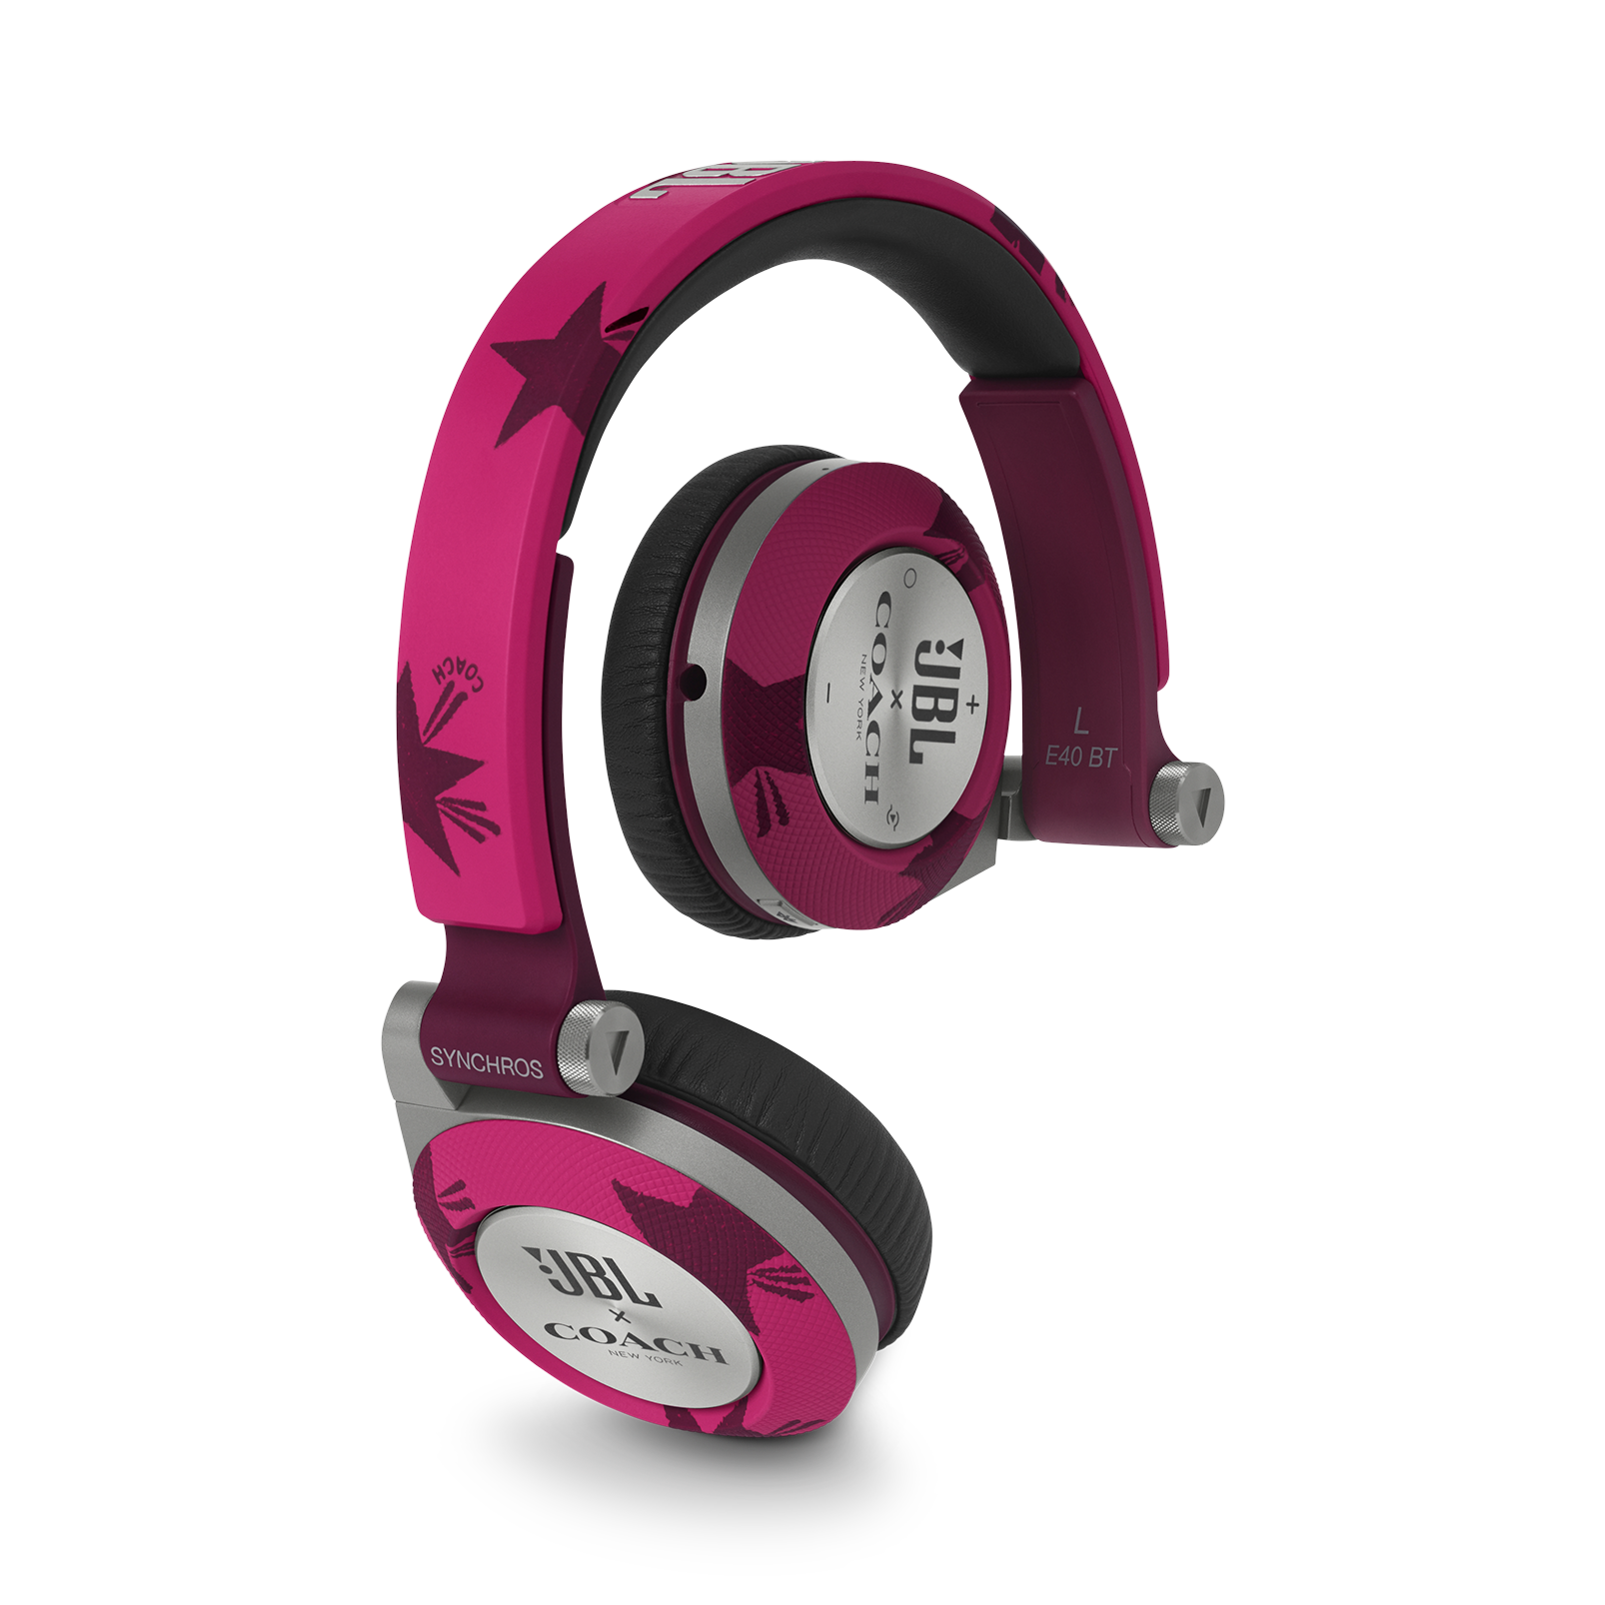 E40BT COACH Limited Edition - Cranberry/Shooting Star - On-ear, mobile phone-friendly headphones featuring JBL signature sound, wireless Bluetooth connectivity with ShareMe music sharing, and an ultra-comfortable fit. - Hero